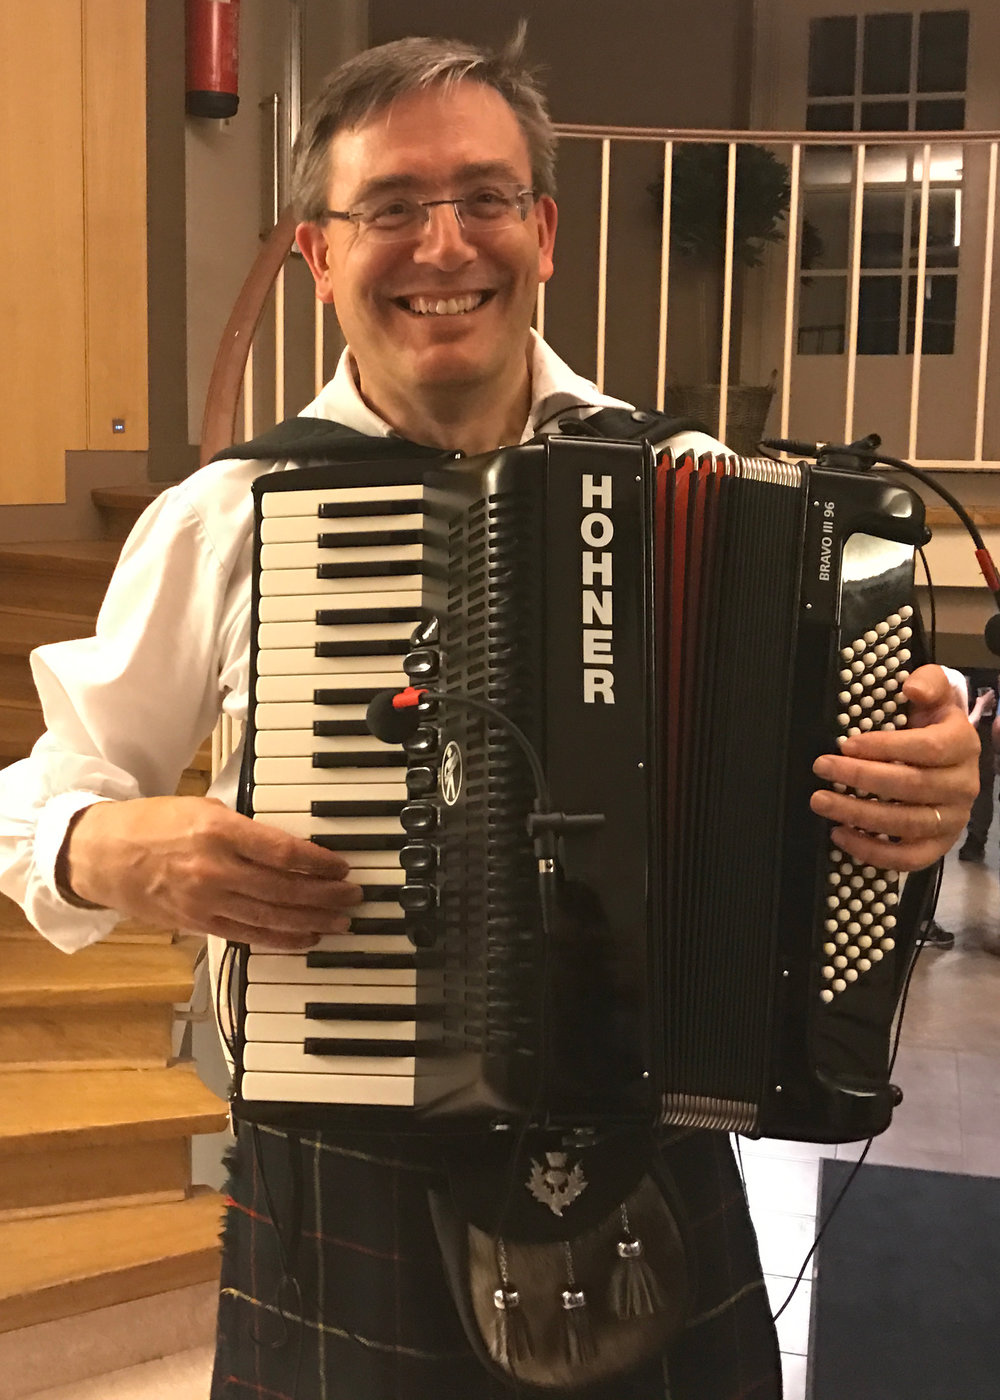 John - Accordion